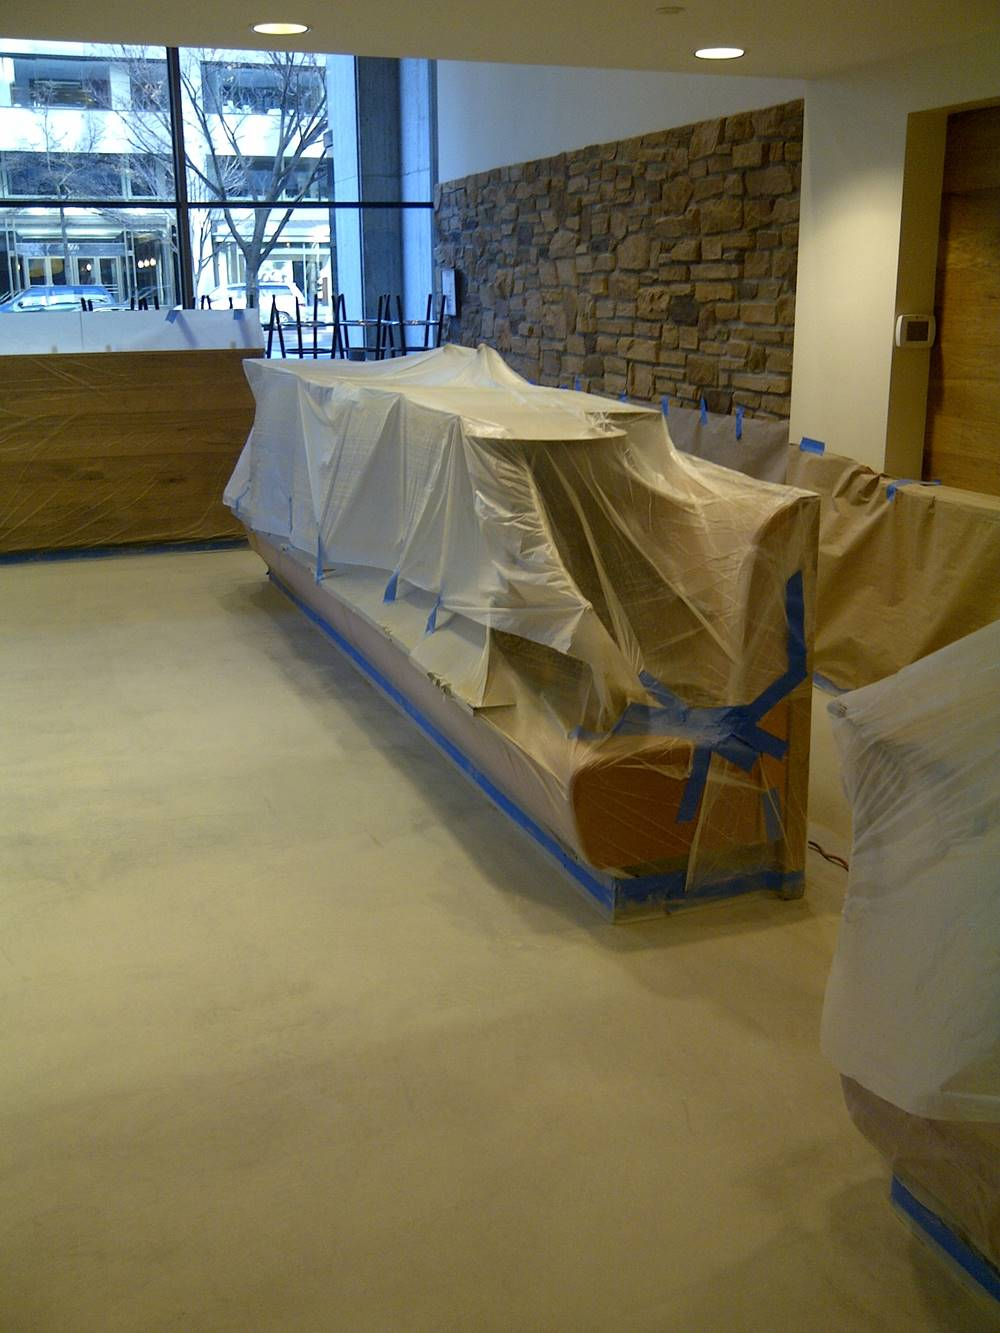 prep for concrete staining with plastic and paper are cheaper. it is cheaper than redoing to paint.